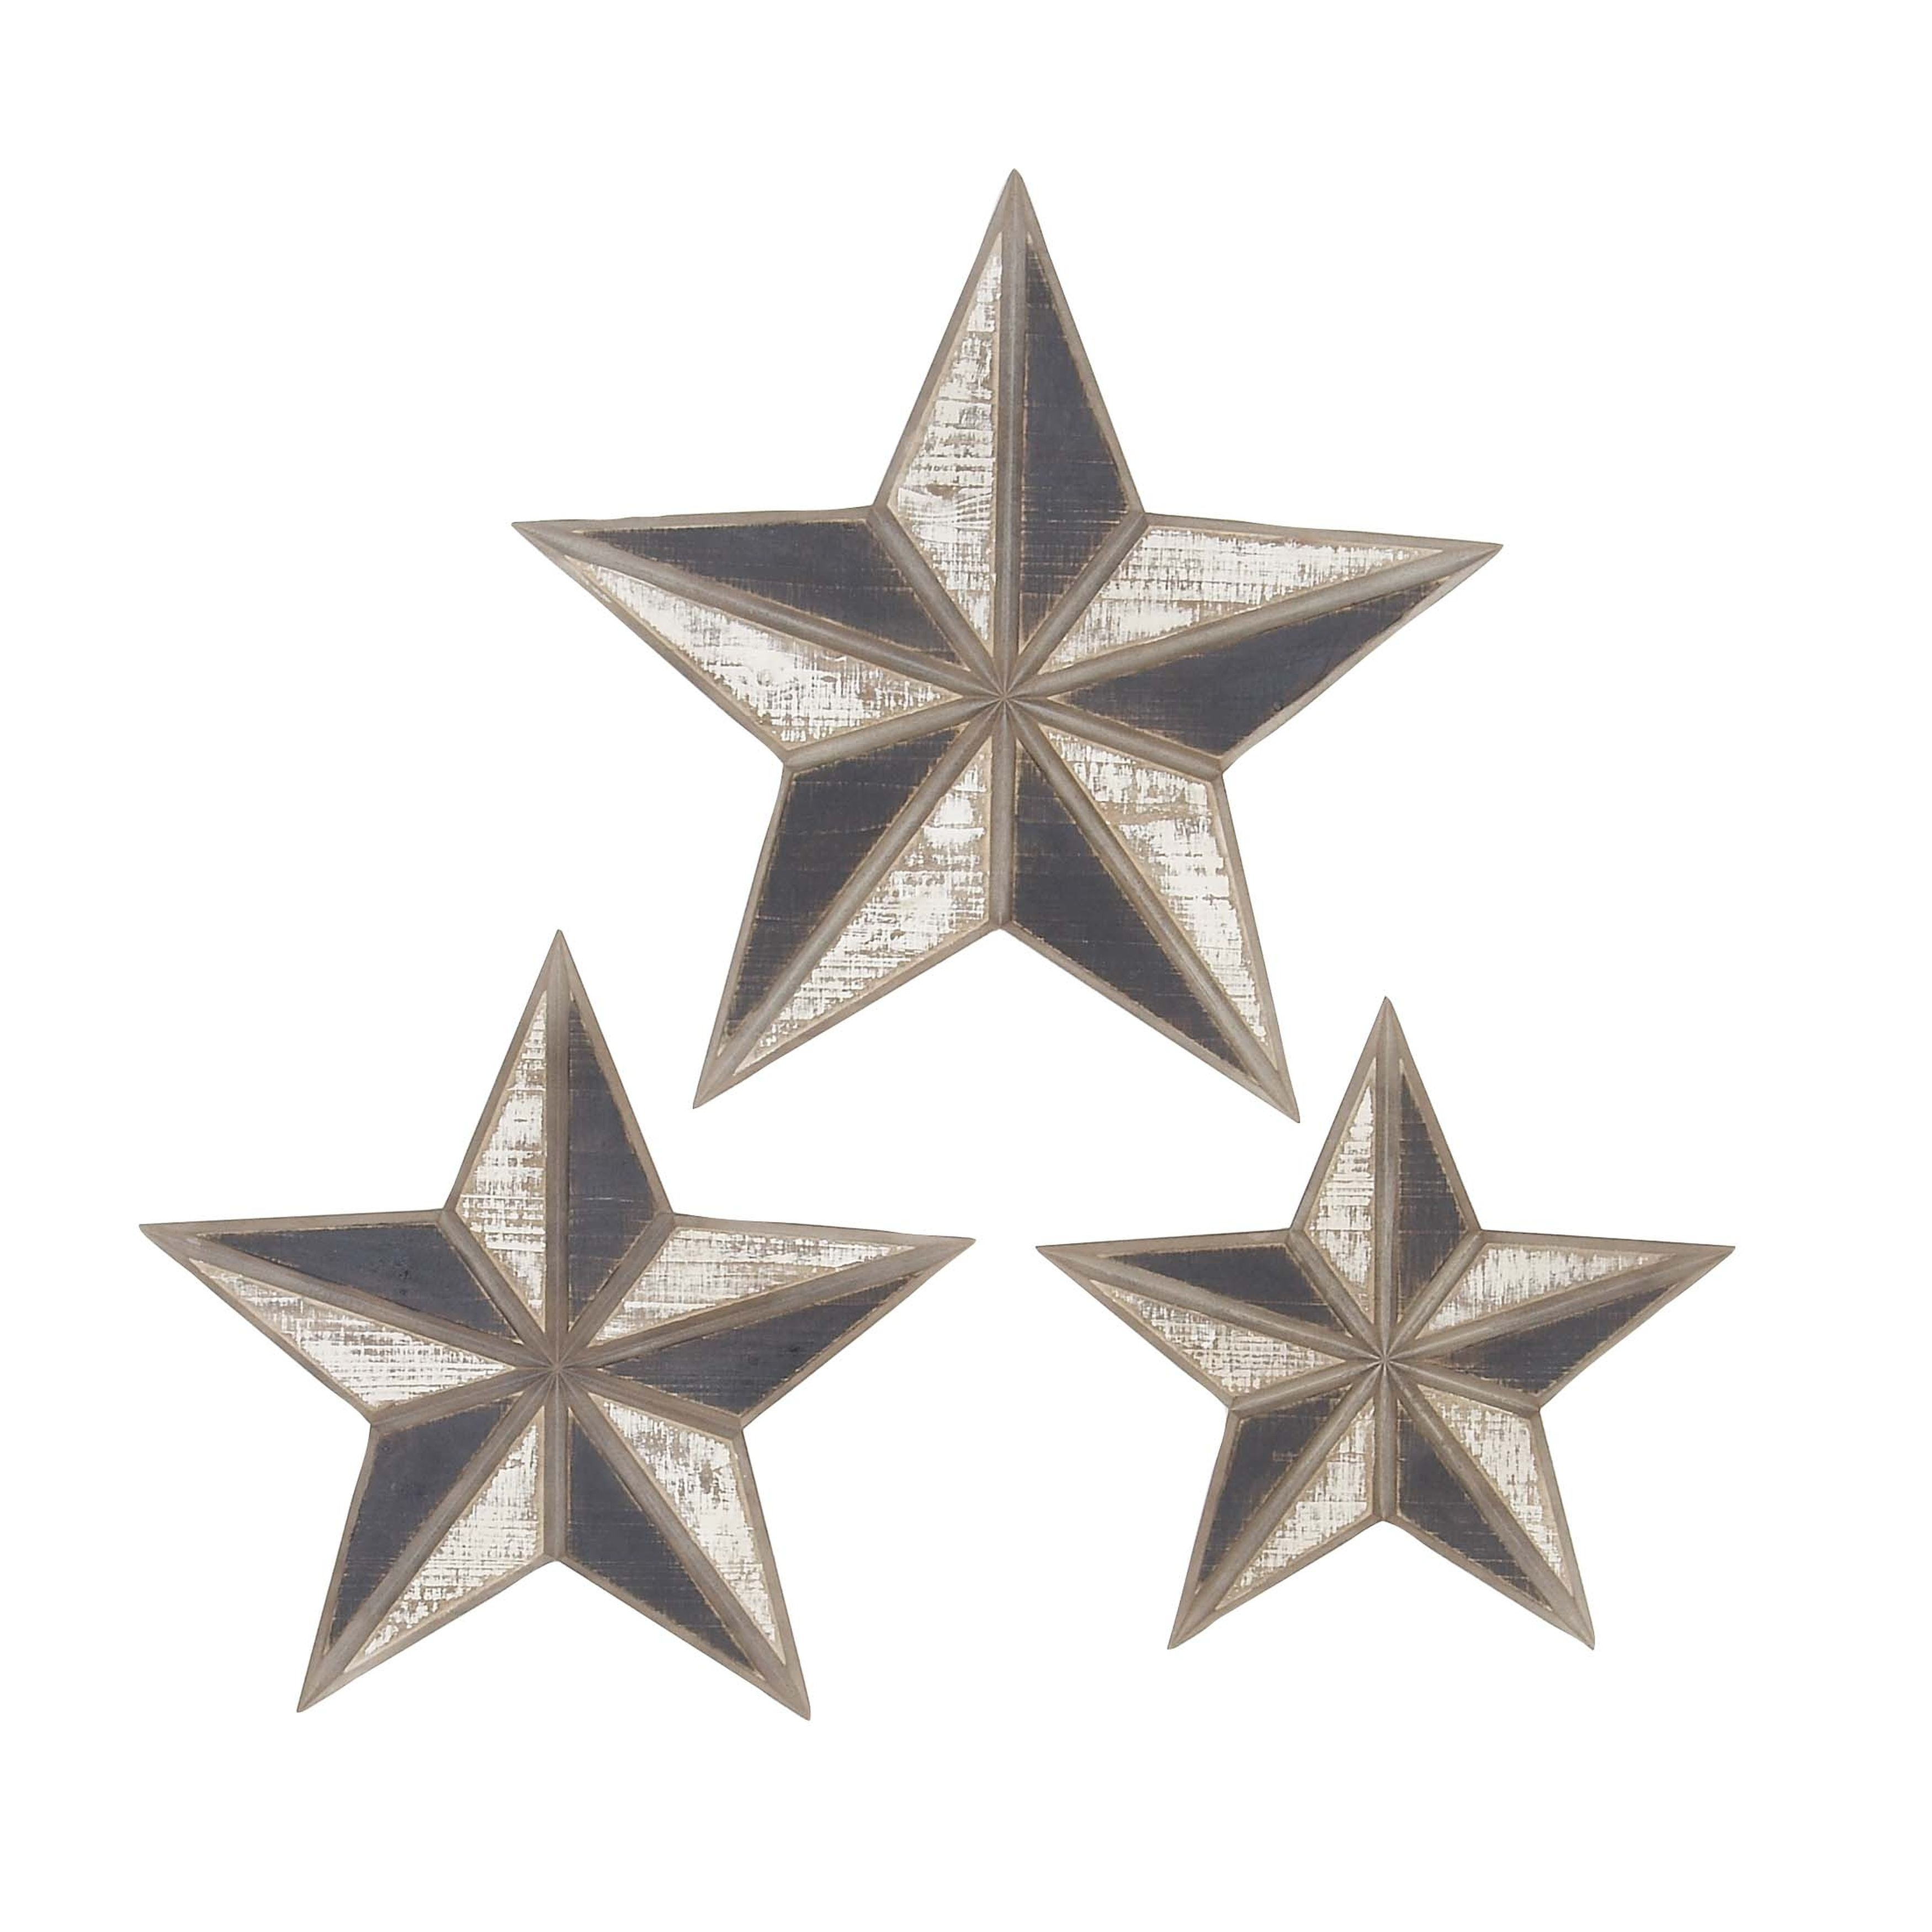 Details About Wall Stars Rustic Western Country Home Decor Wooden Set 3 Gift Plaque New